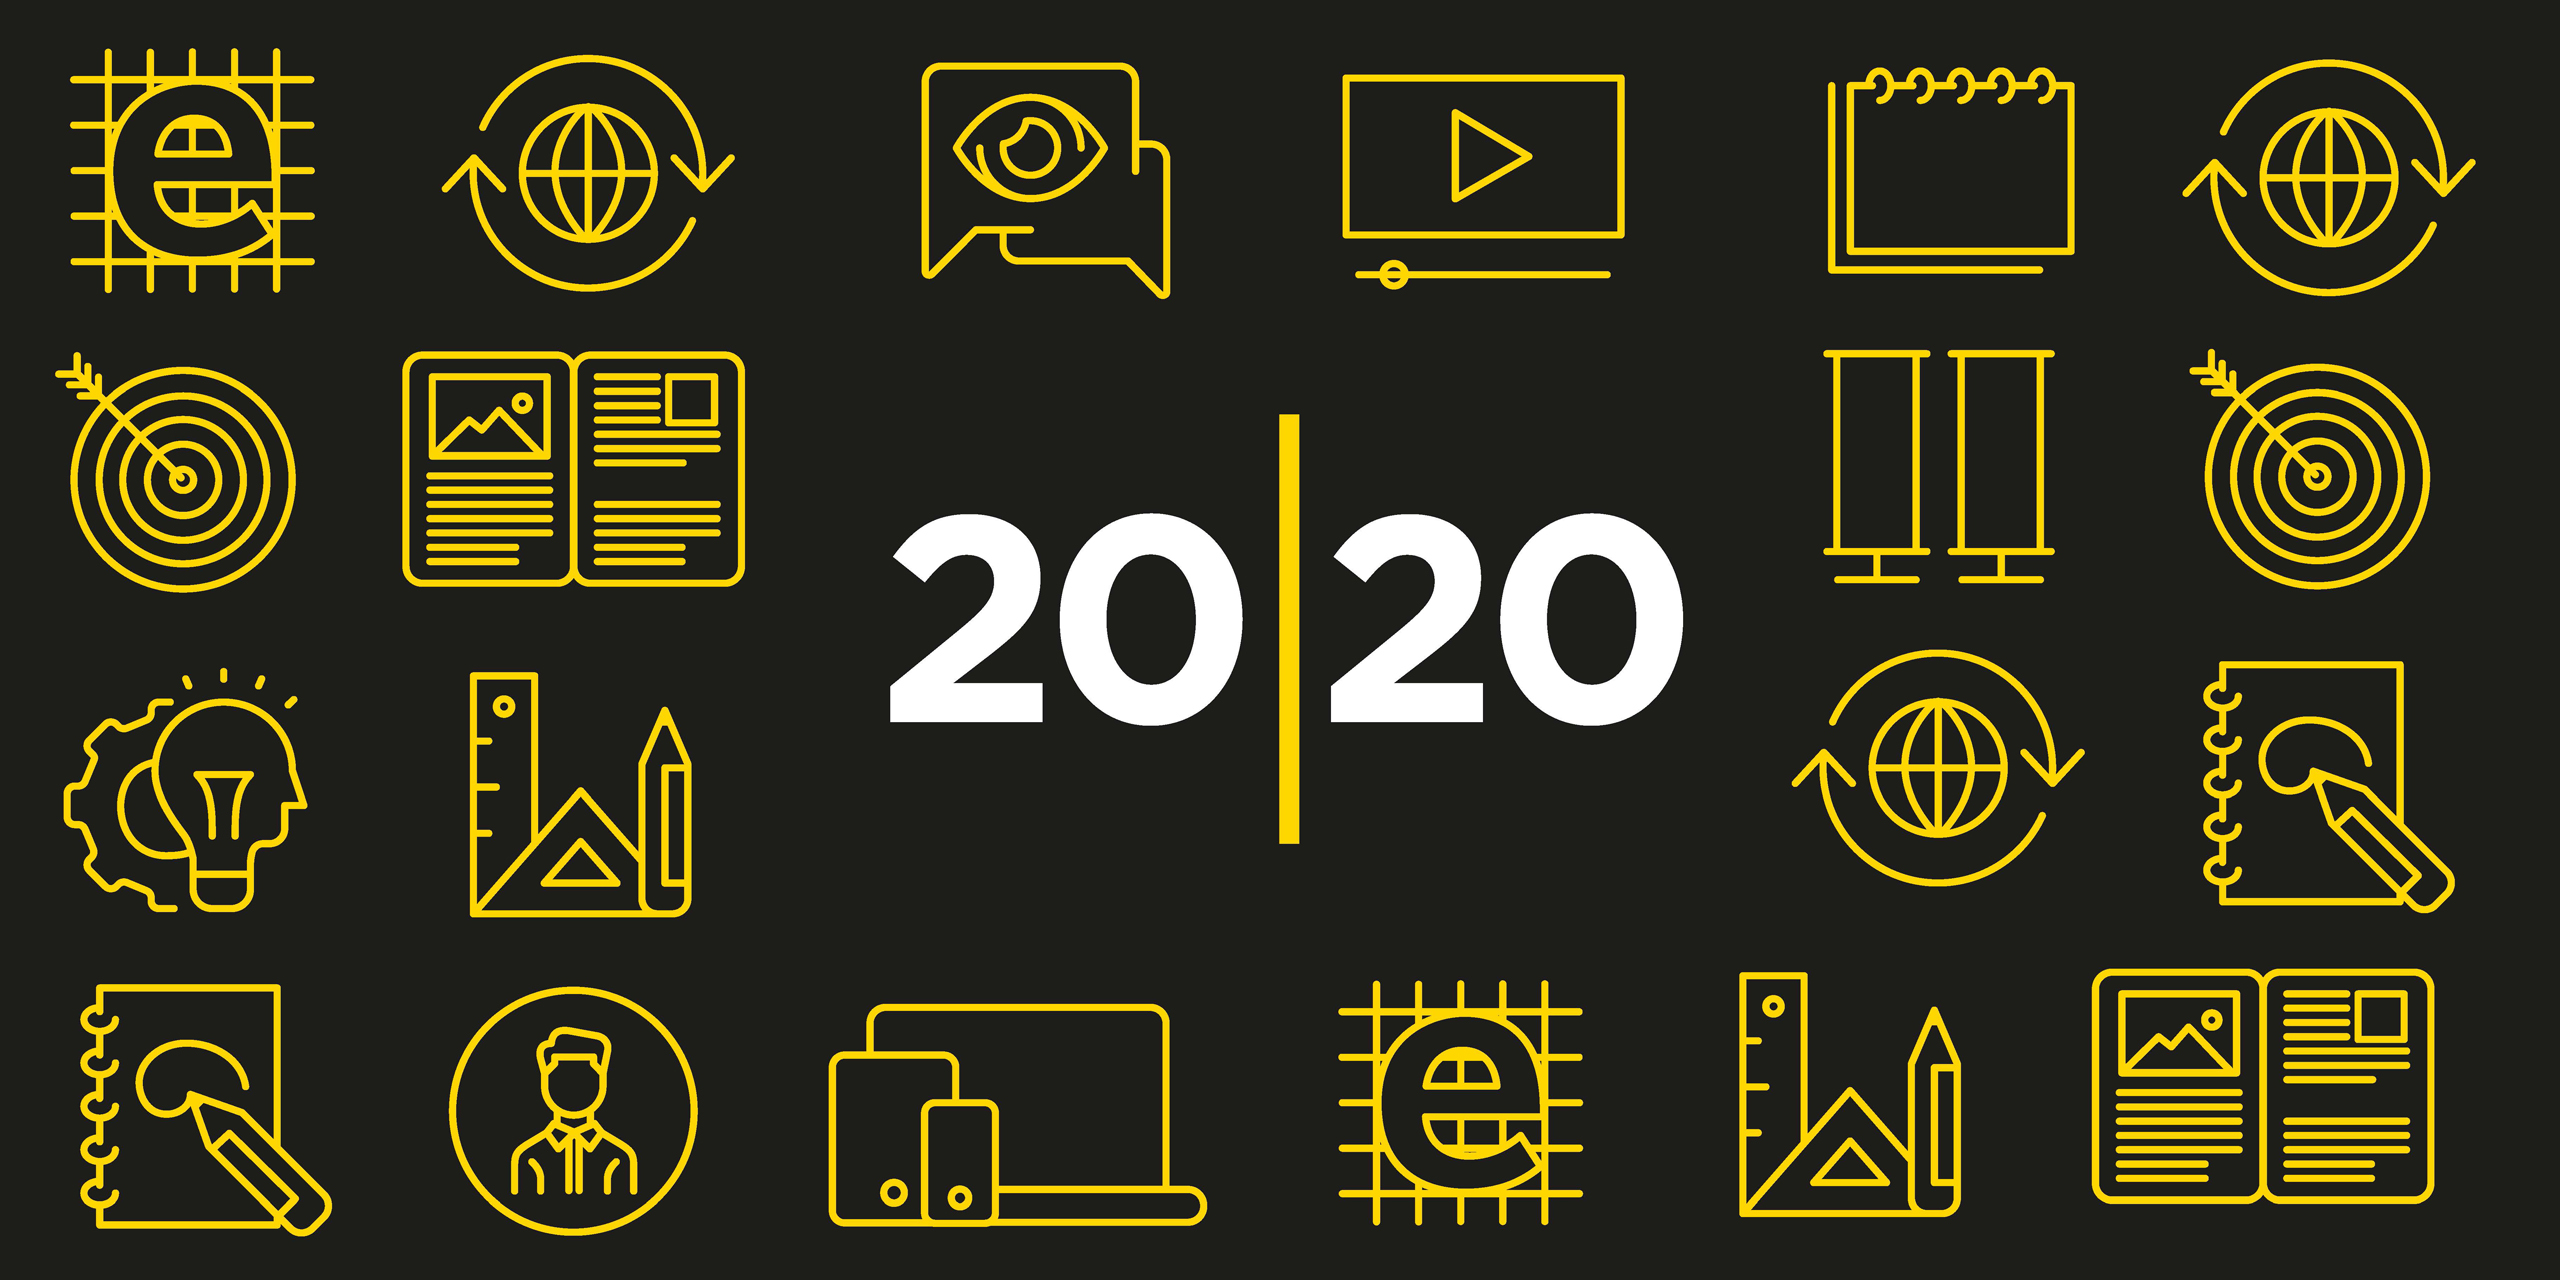 20 for 2020: The trends shaping our conversations